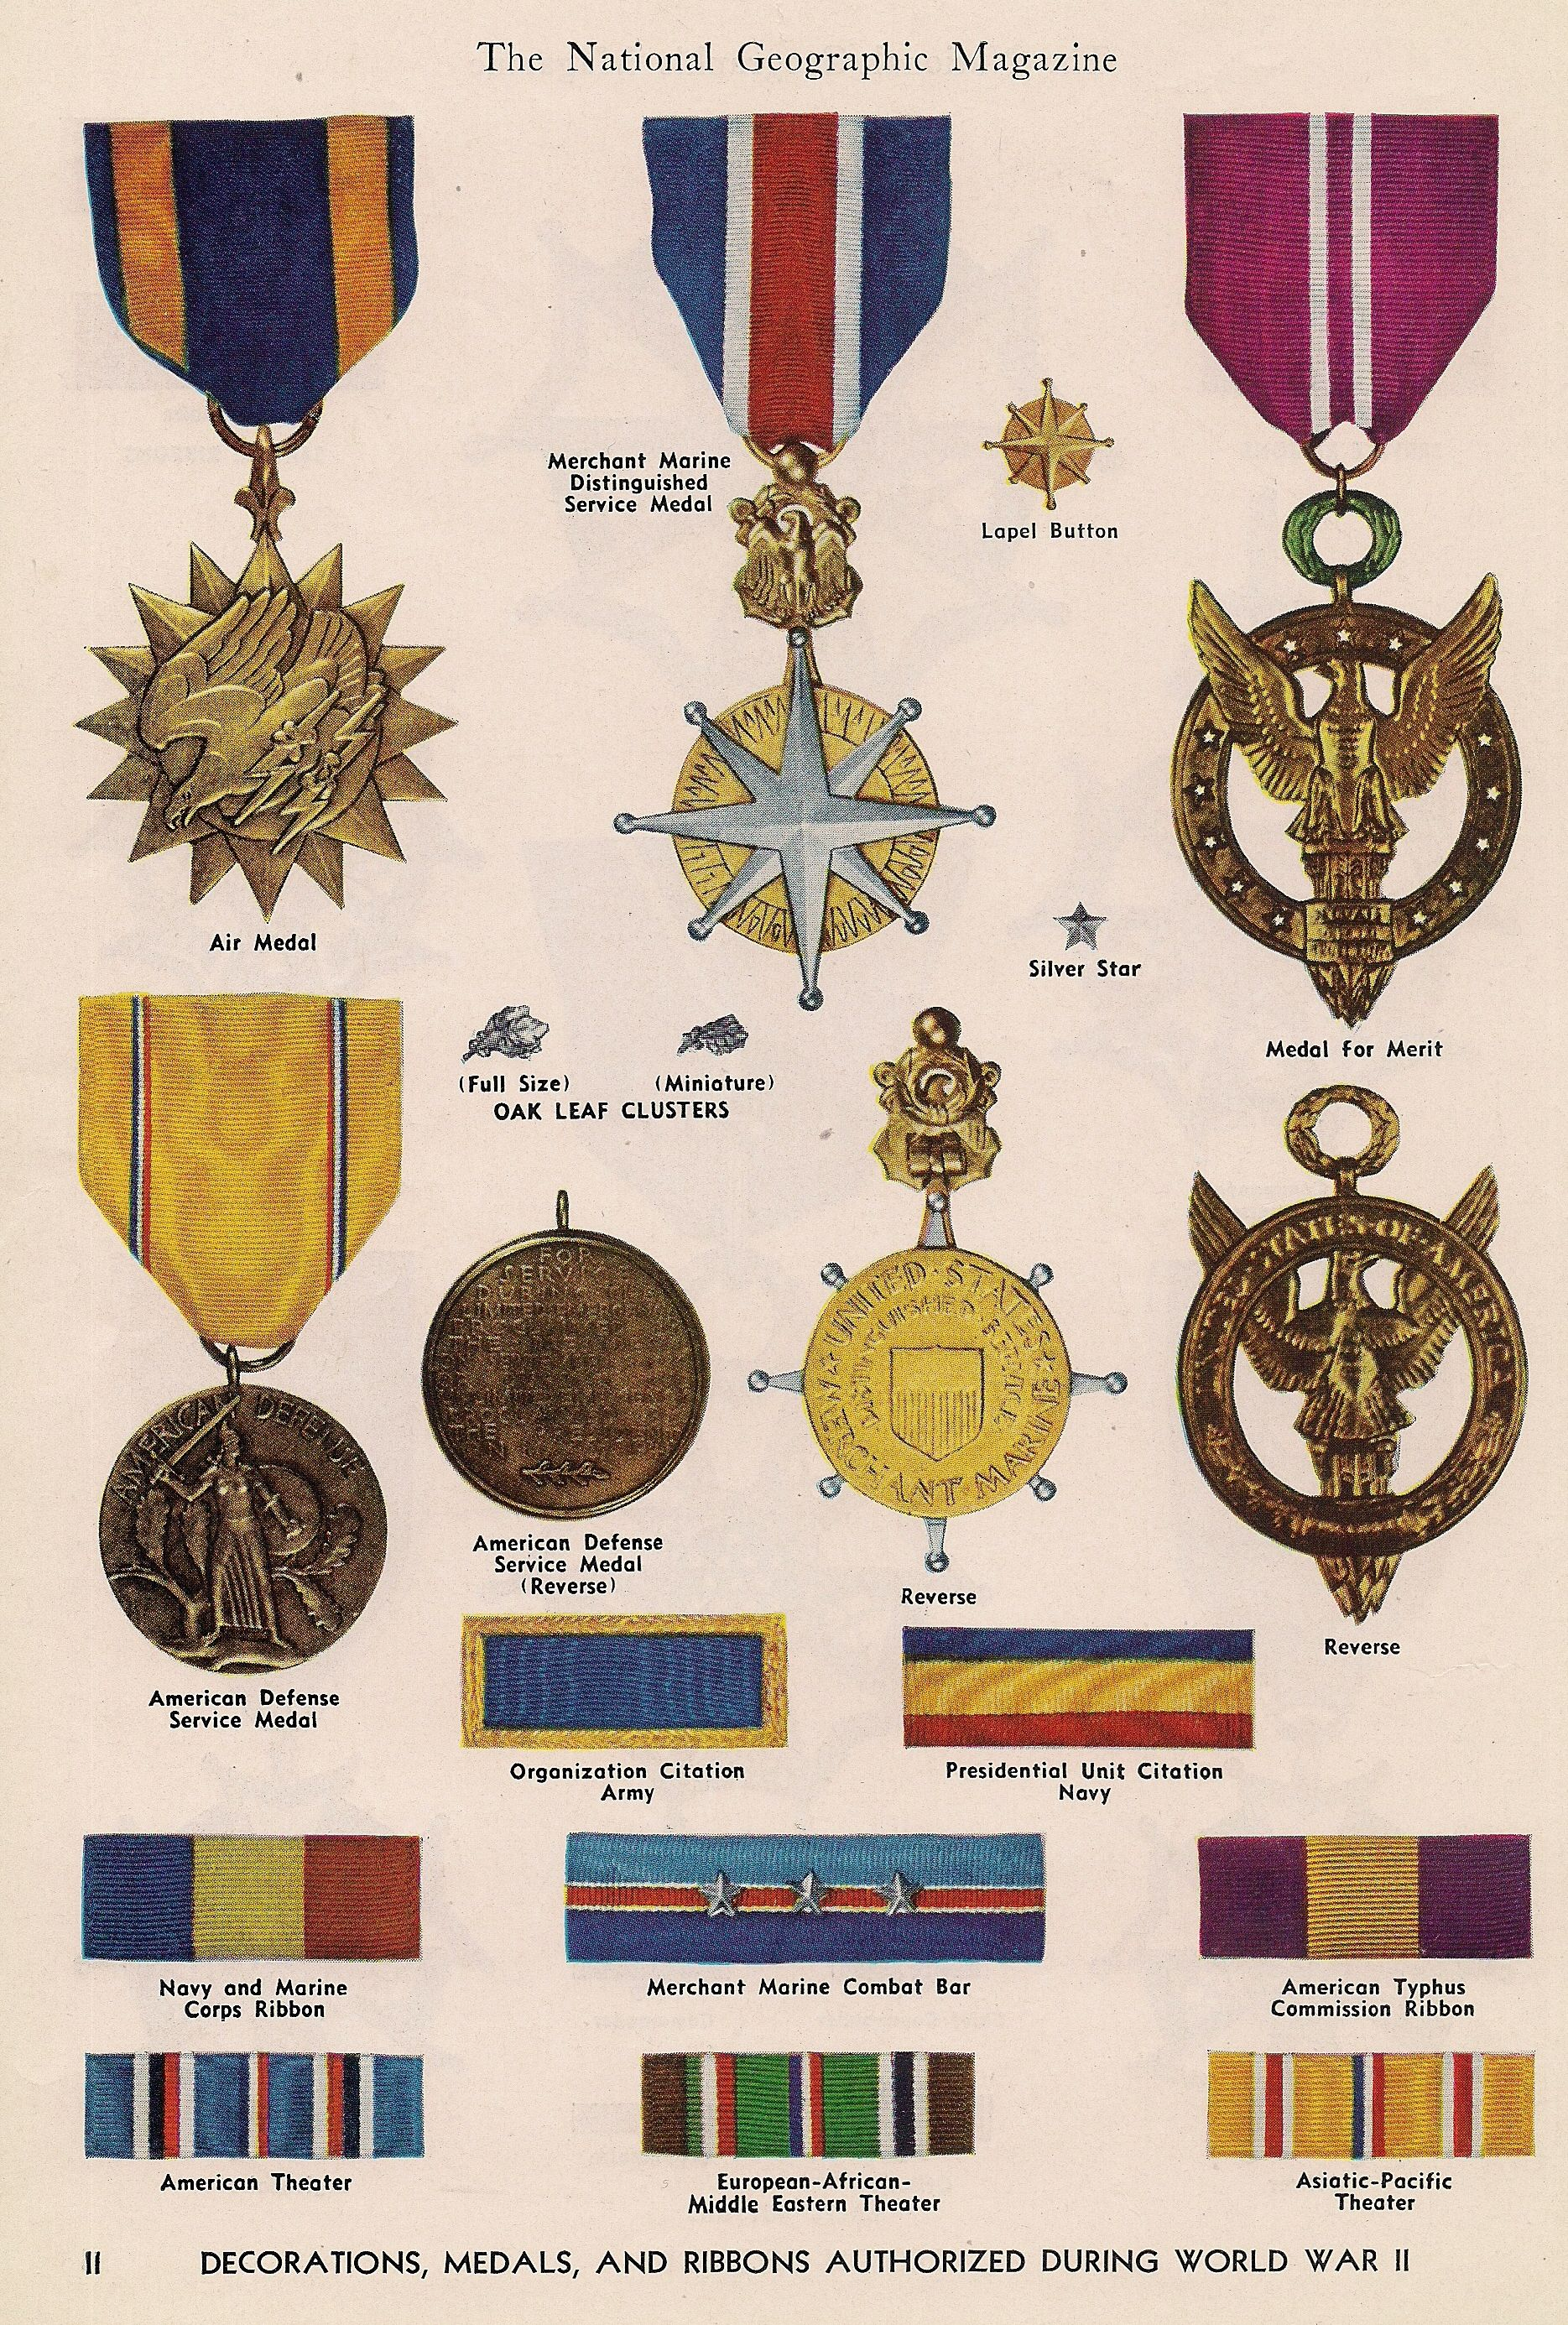 Decoration Americaine Militaire Decorations Medals And Ribbons Authorized During World War